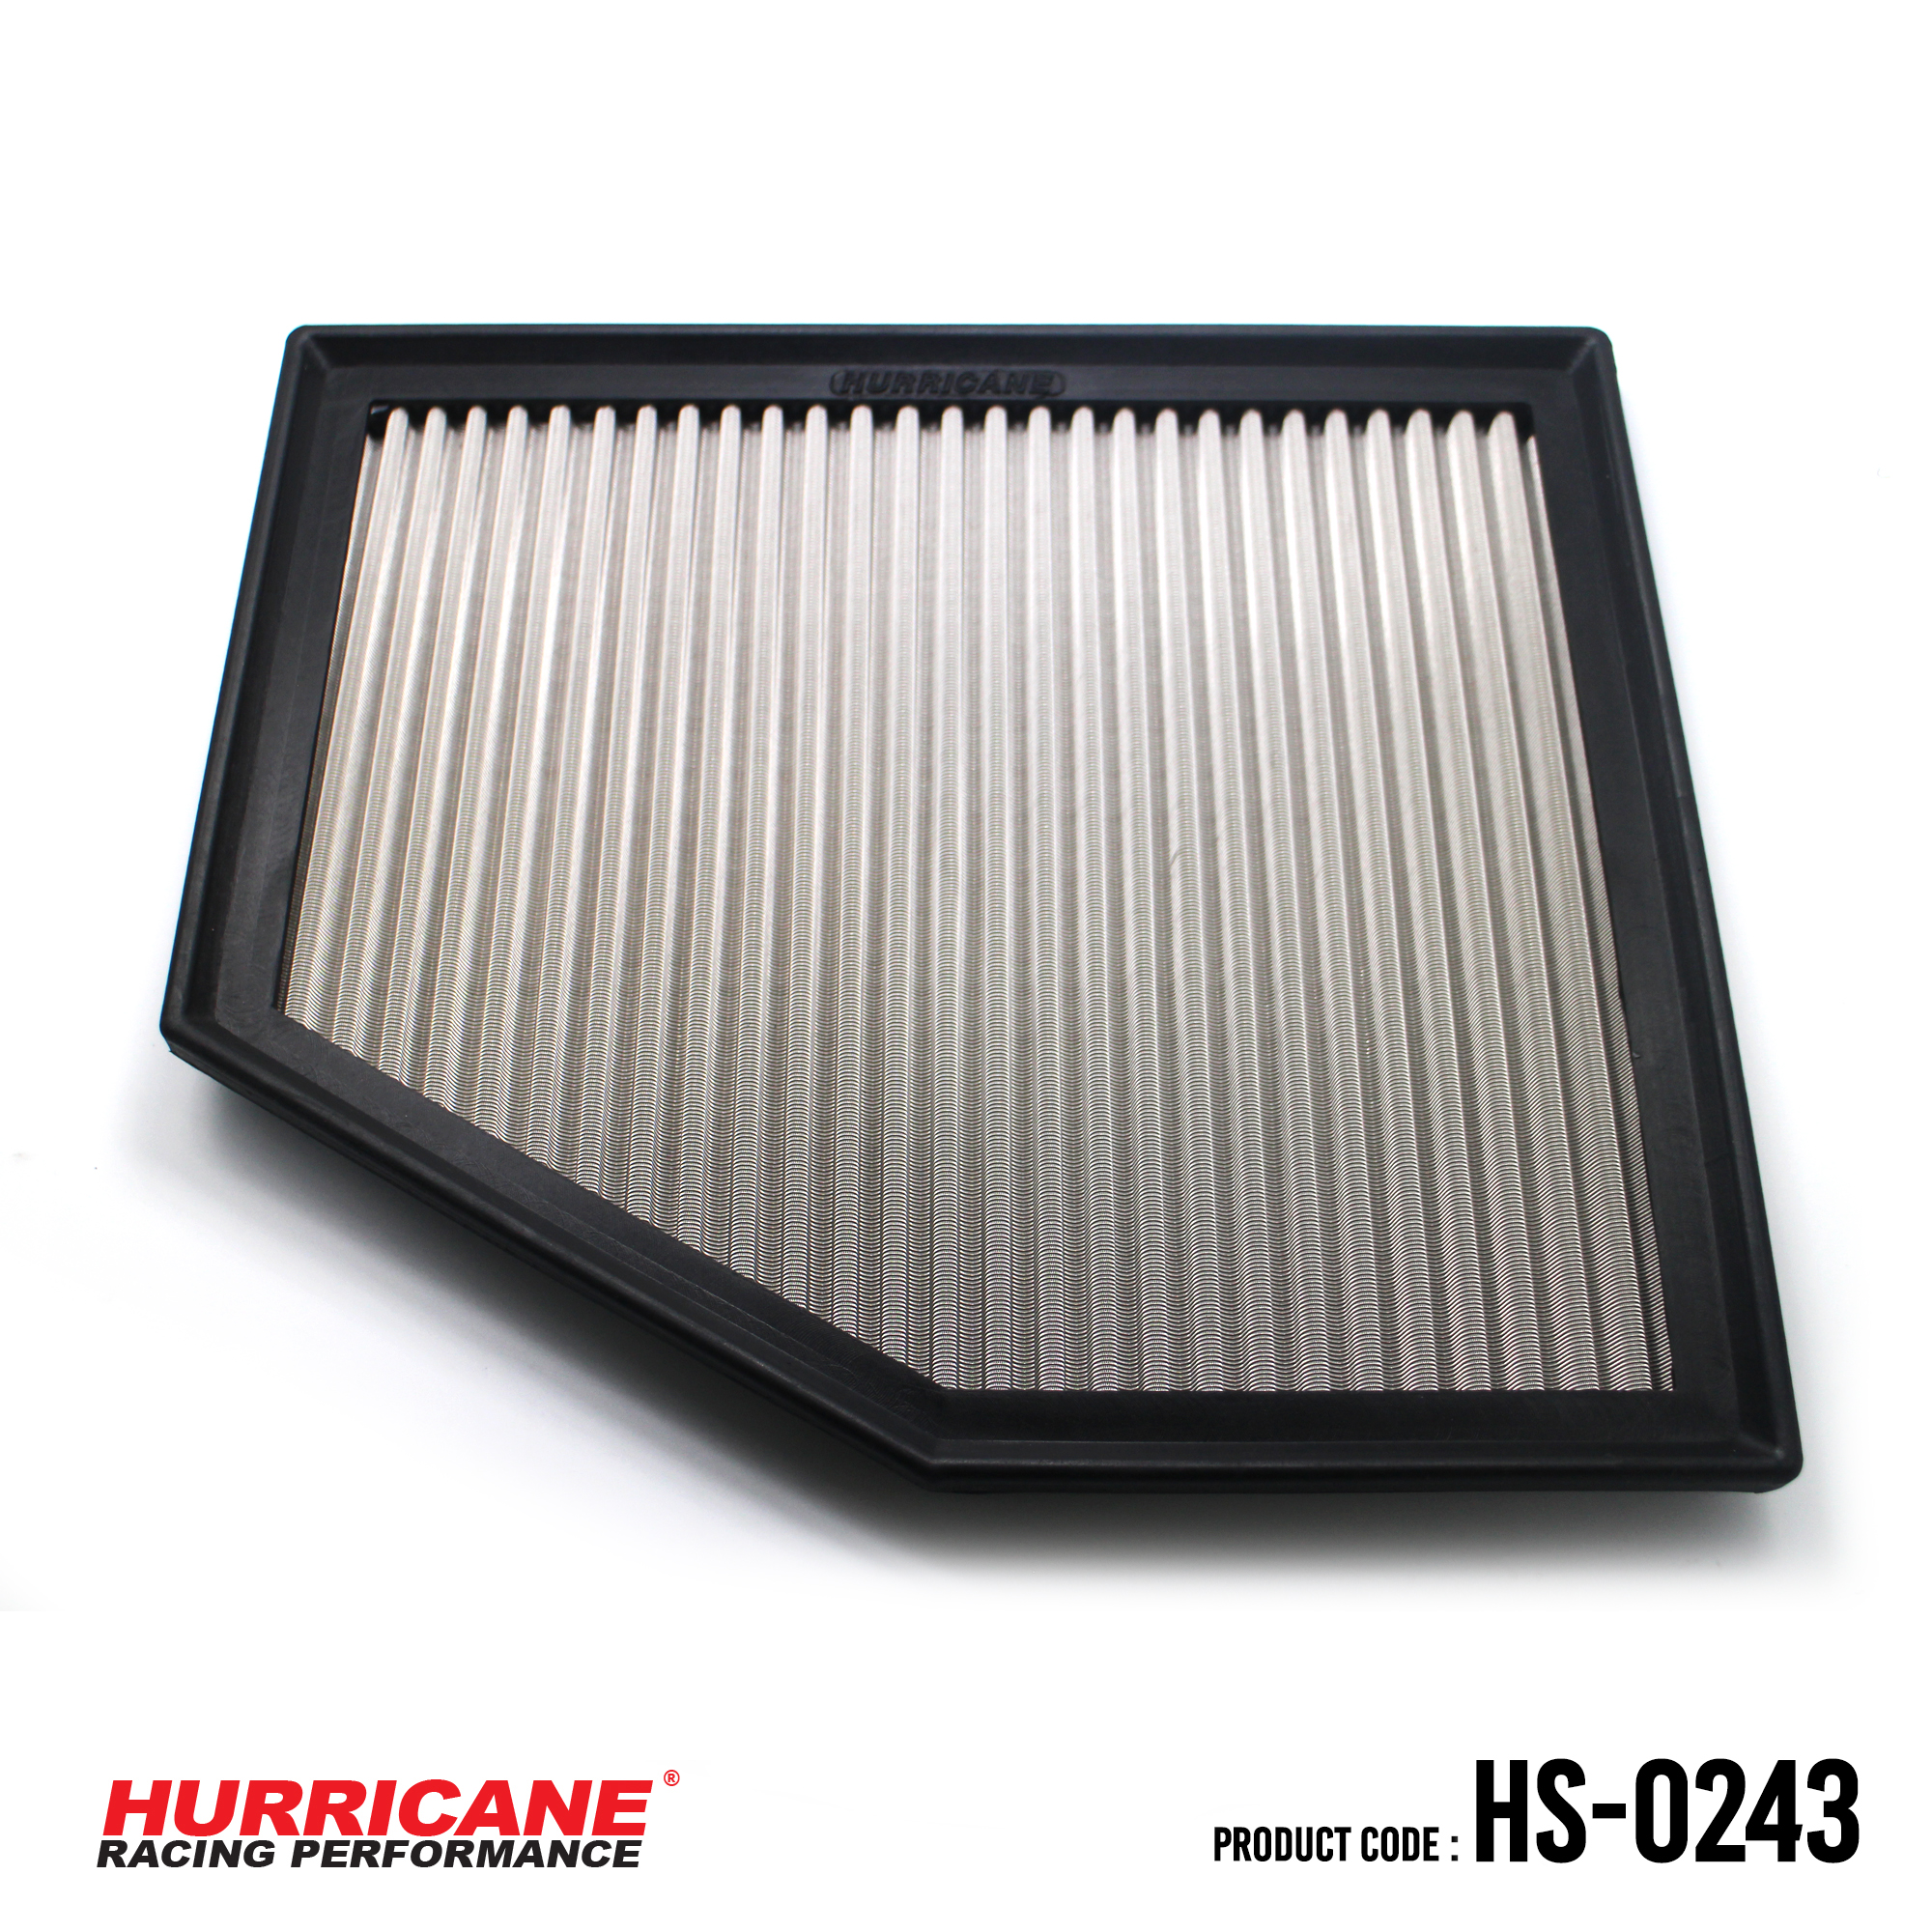 HURRICANE STAINLESS STEEL AIR FILTER FOR HS-0243 BMW